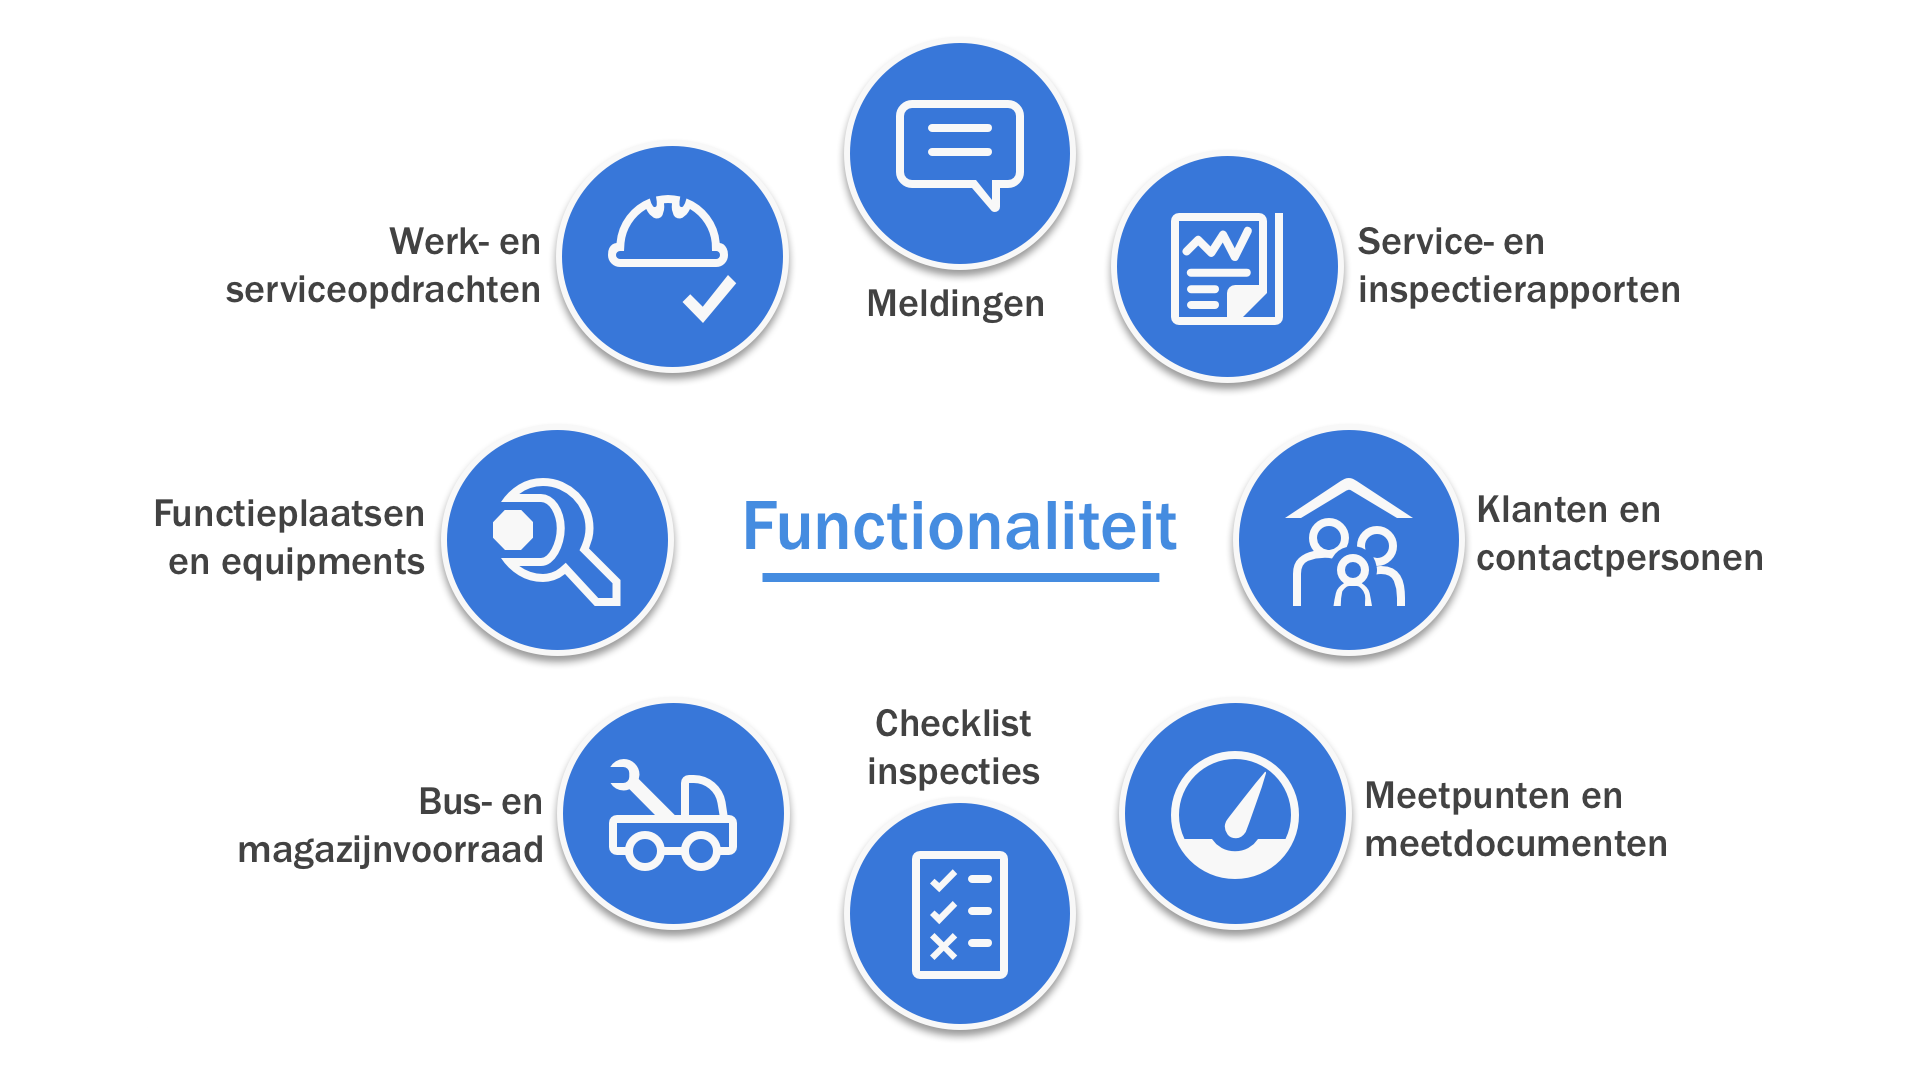 SAM Functionaliteiten Cirkel Iconen 2